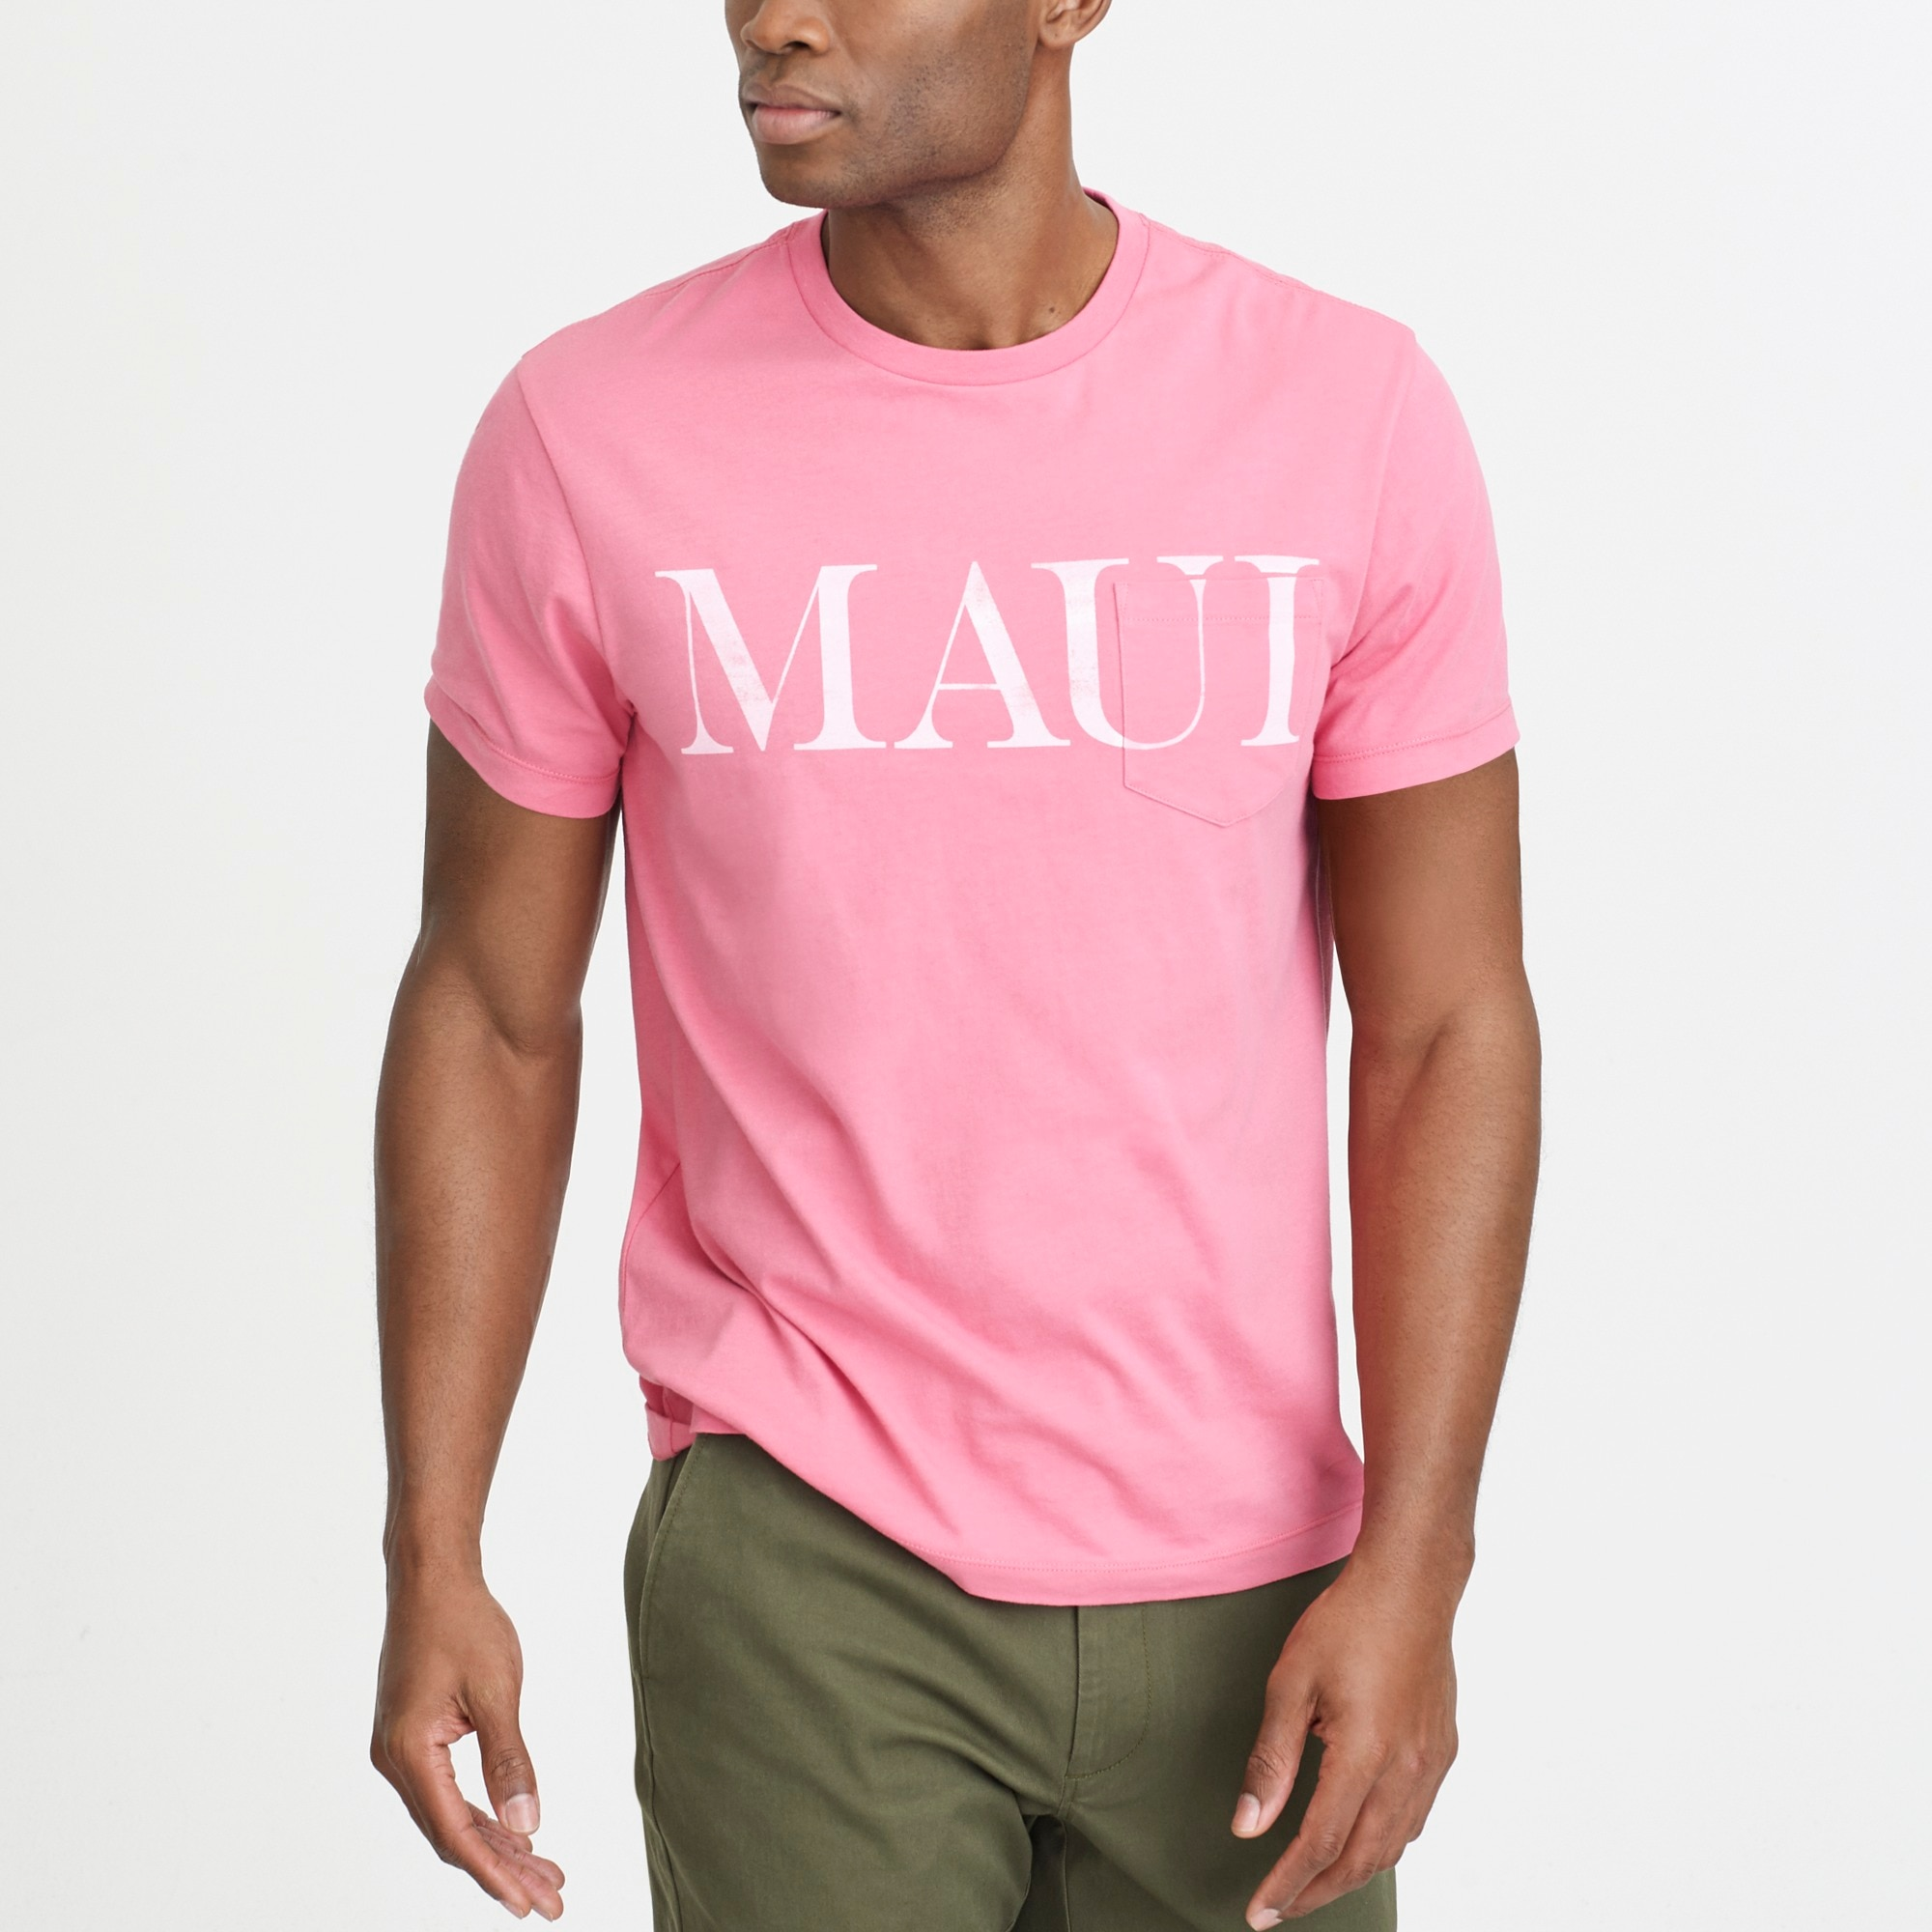 J.Crew Mercantile Broken-in Maui T-shirt